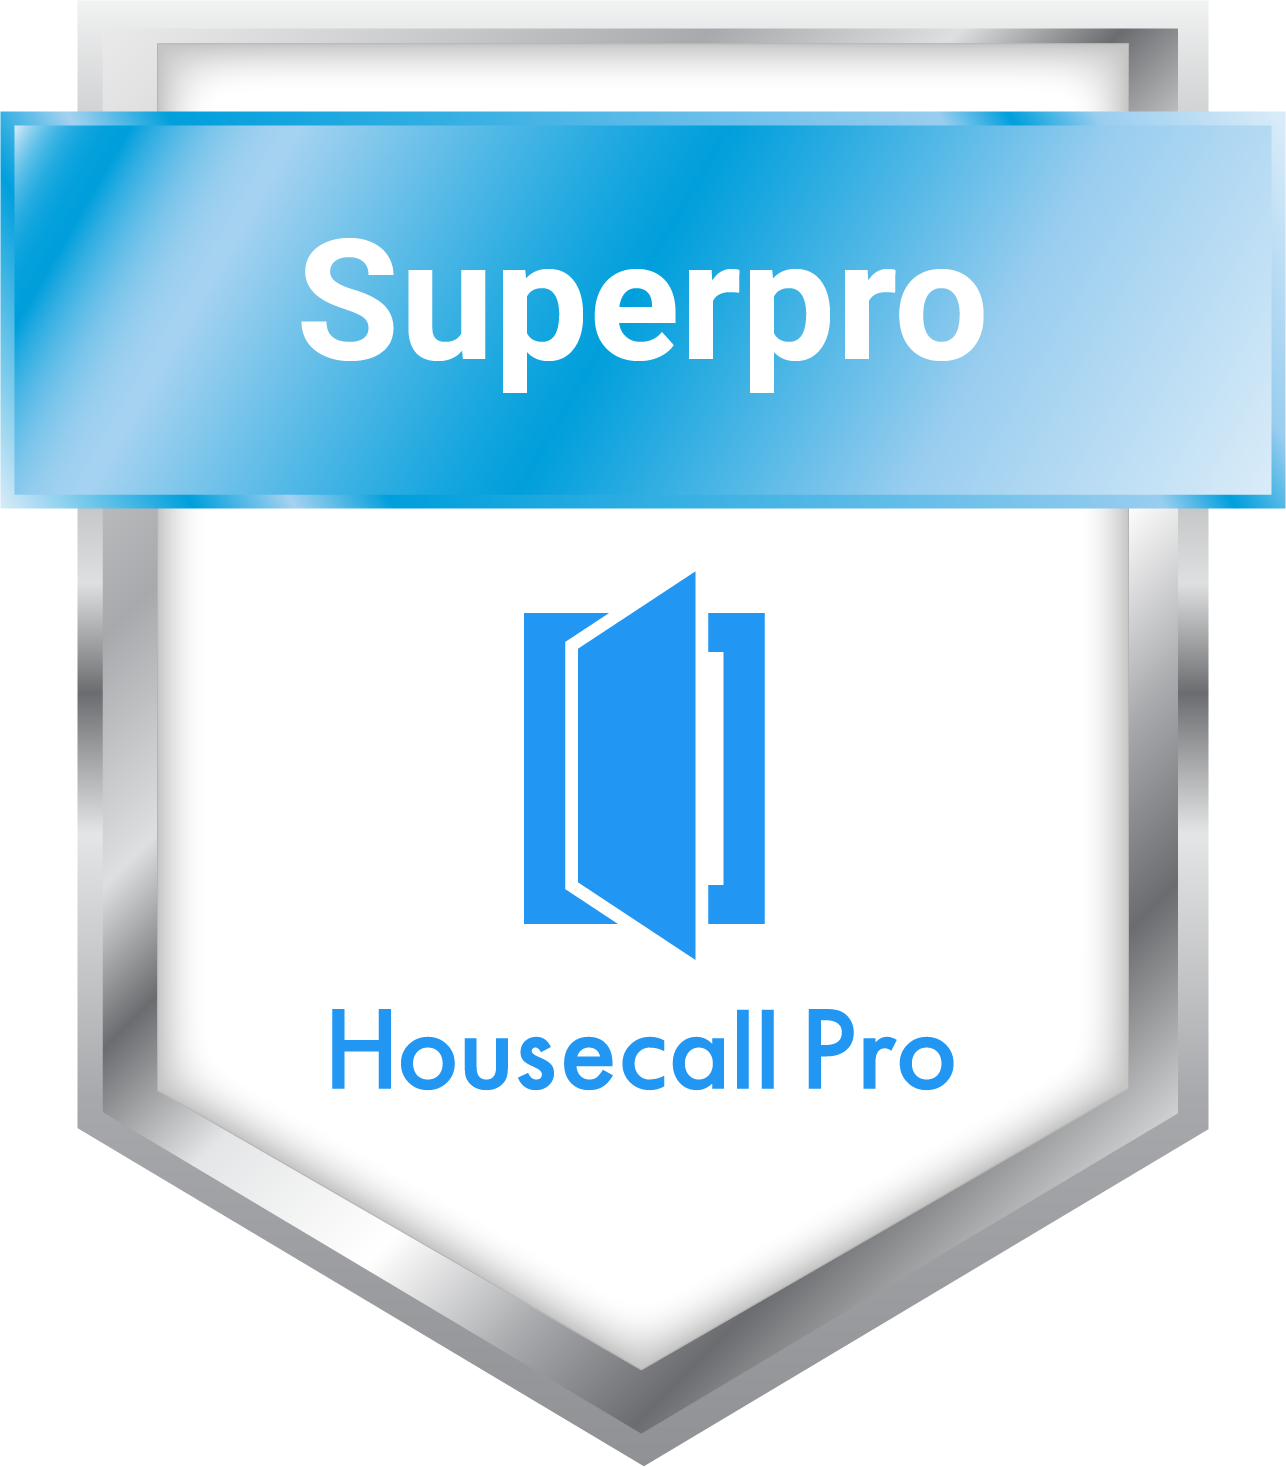 We have achieved Superpro status in Housecall Pro